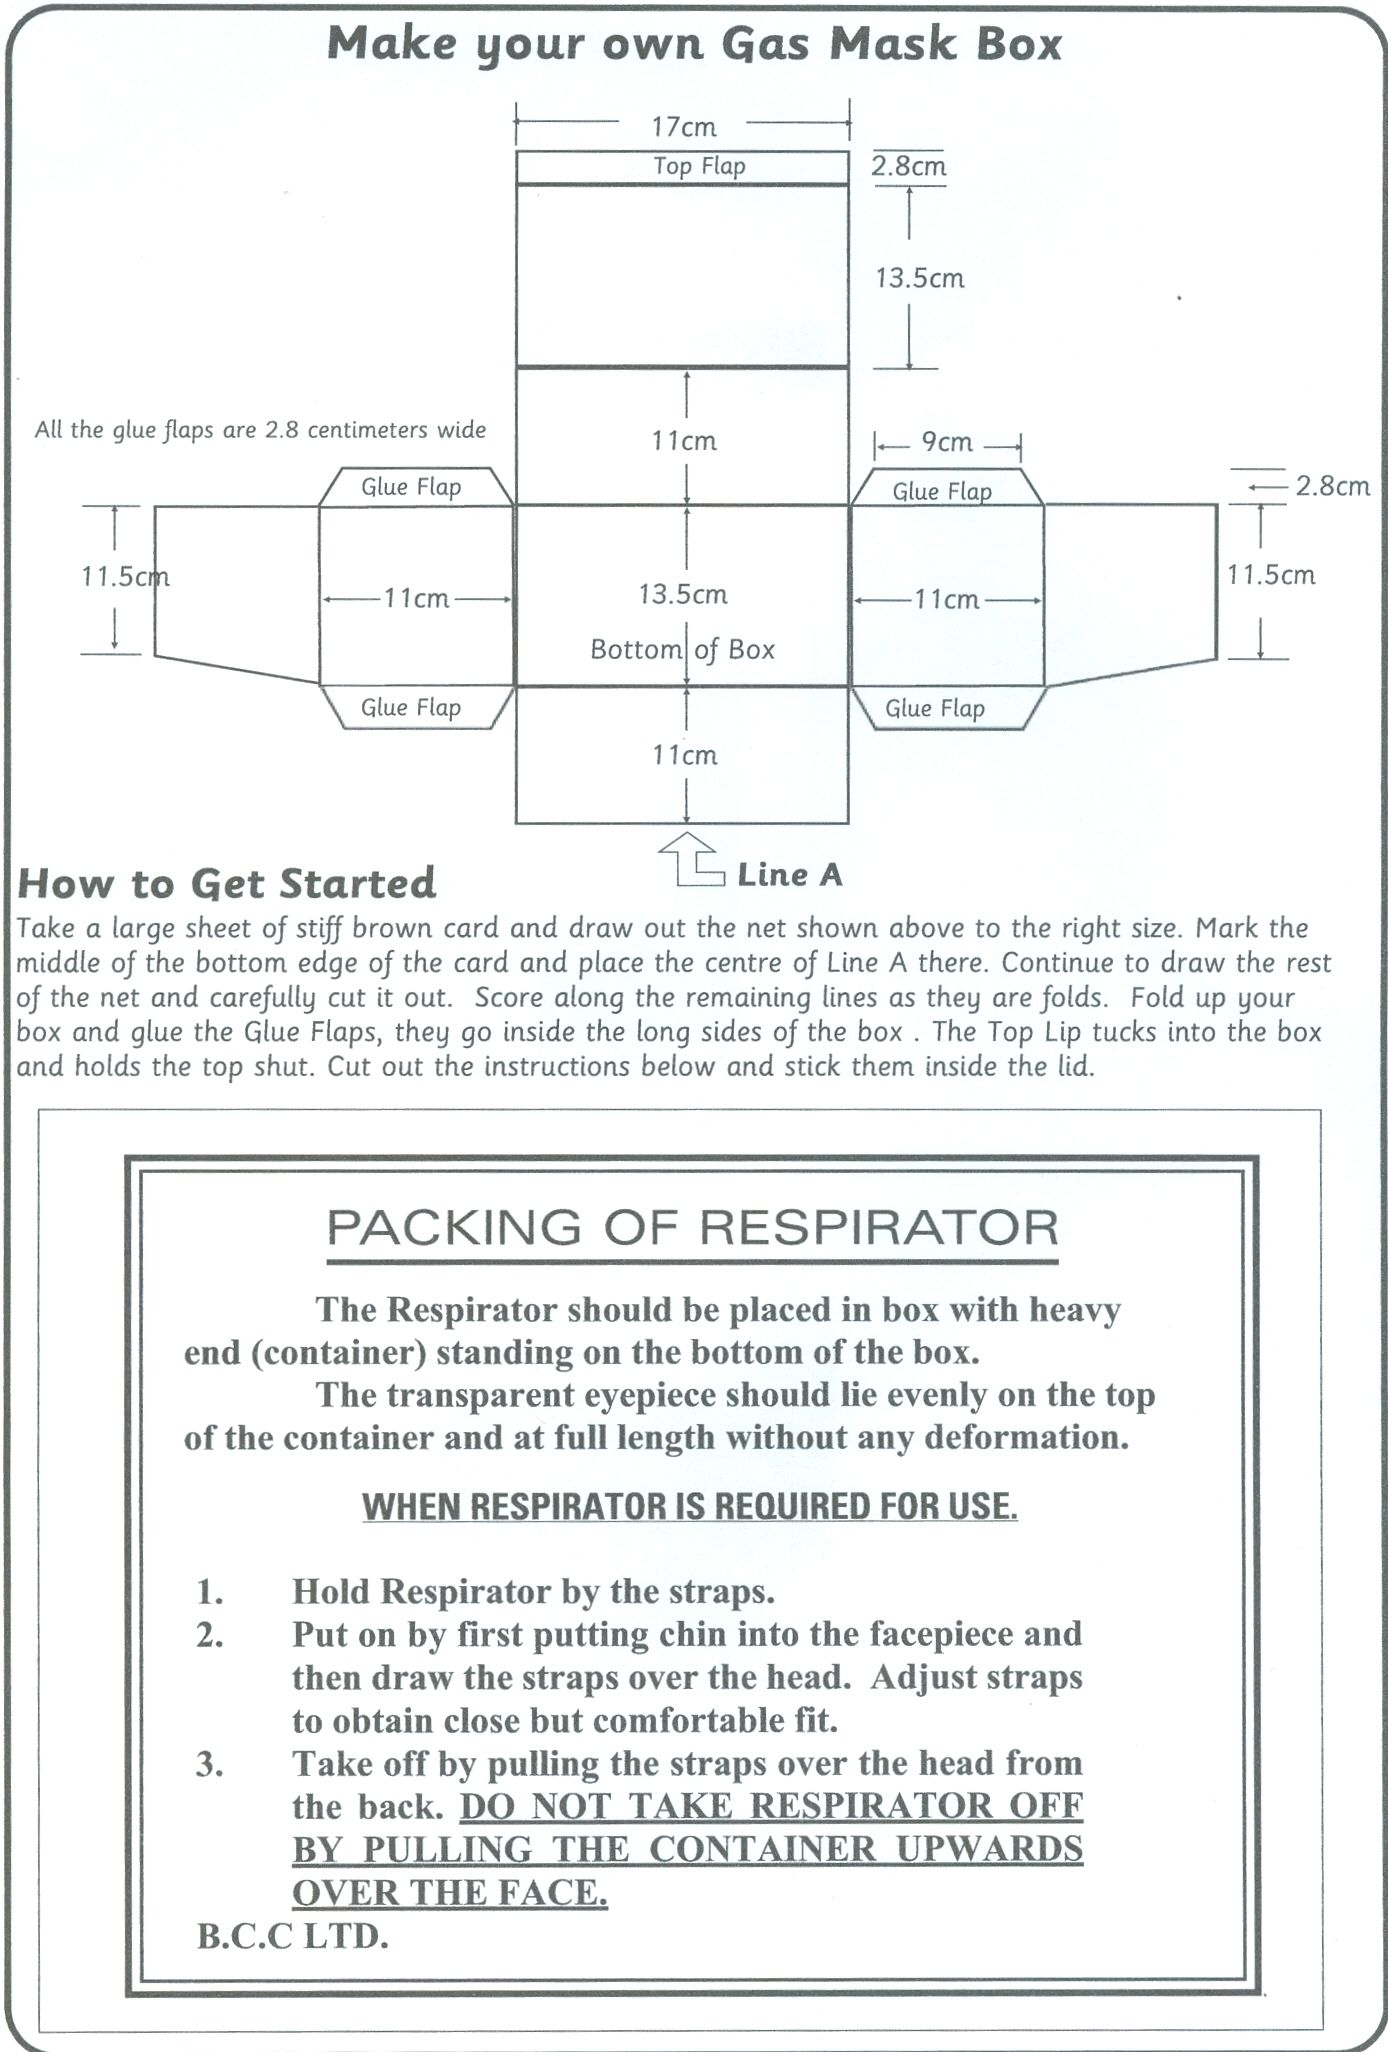 Template Of A Gas Mask Box